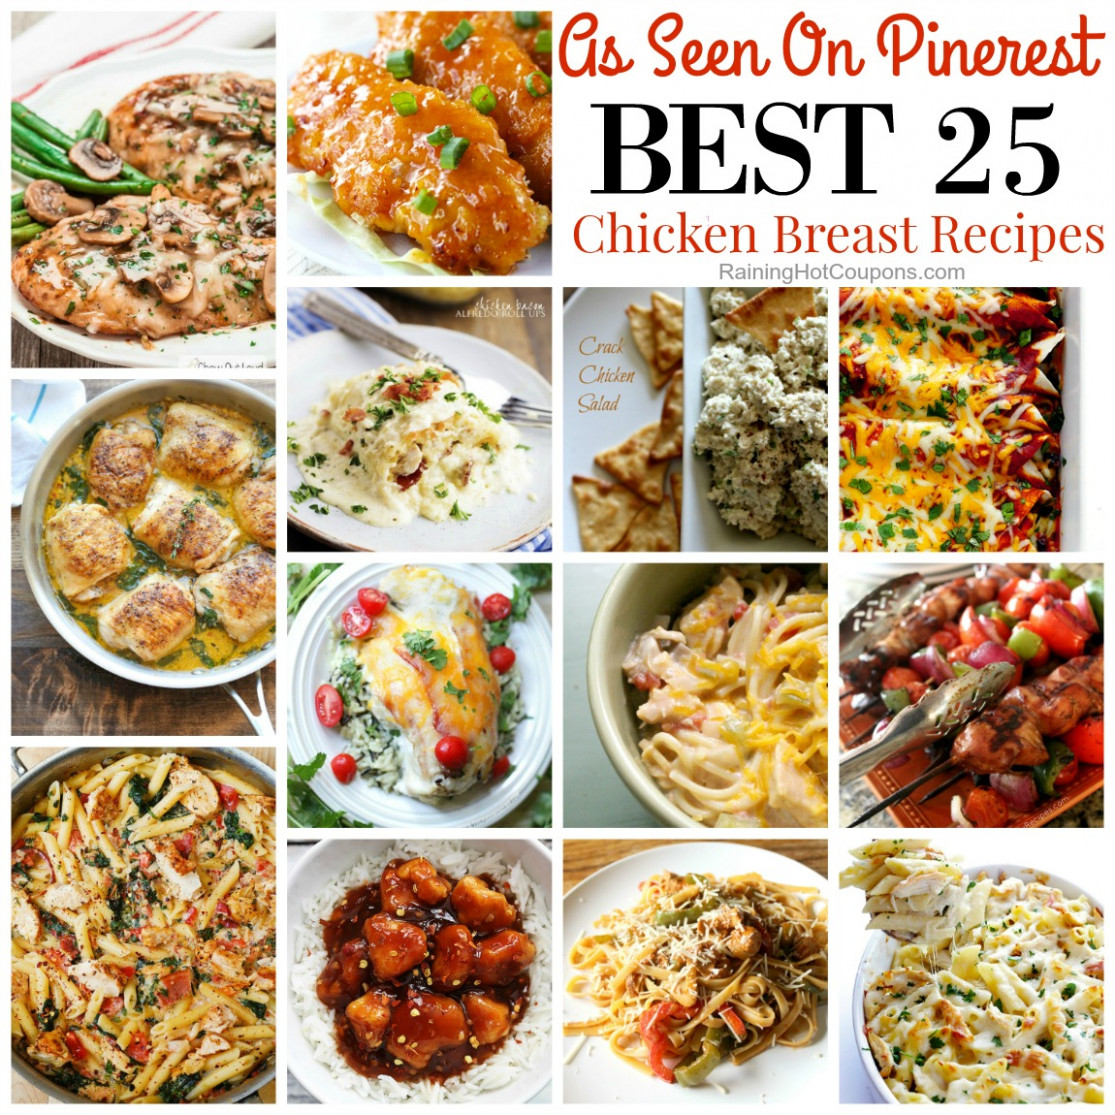 12 of the Best Easy Dinner Ideas with Chicken Breasts - dinner recipes chicken breast